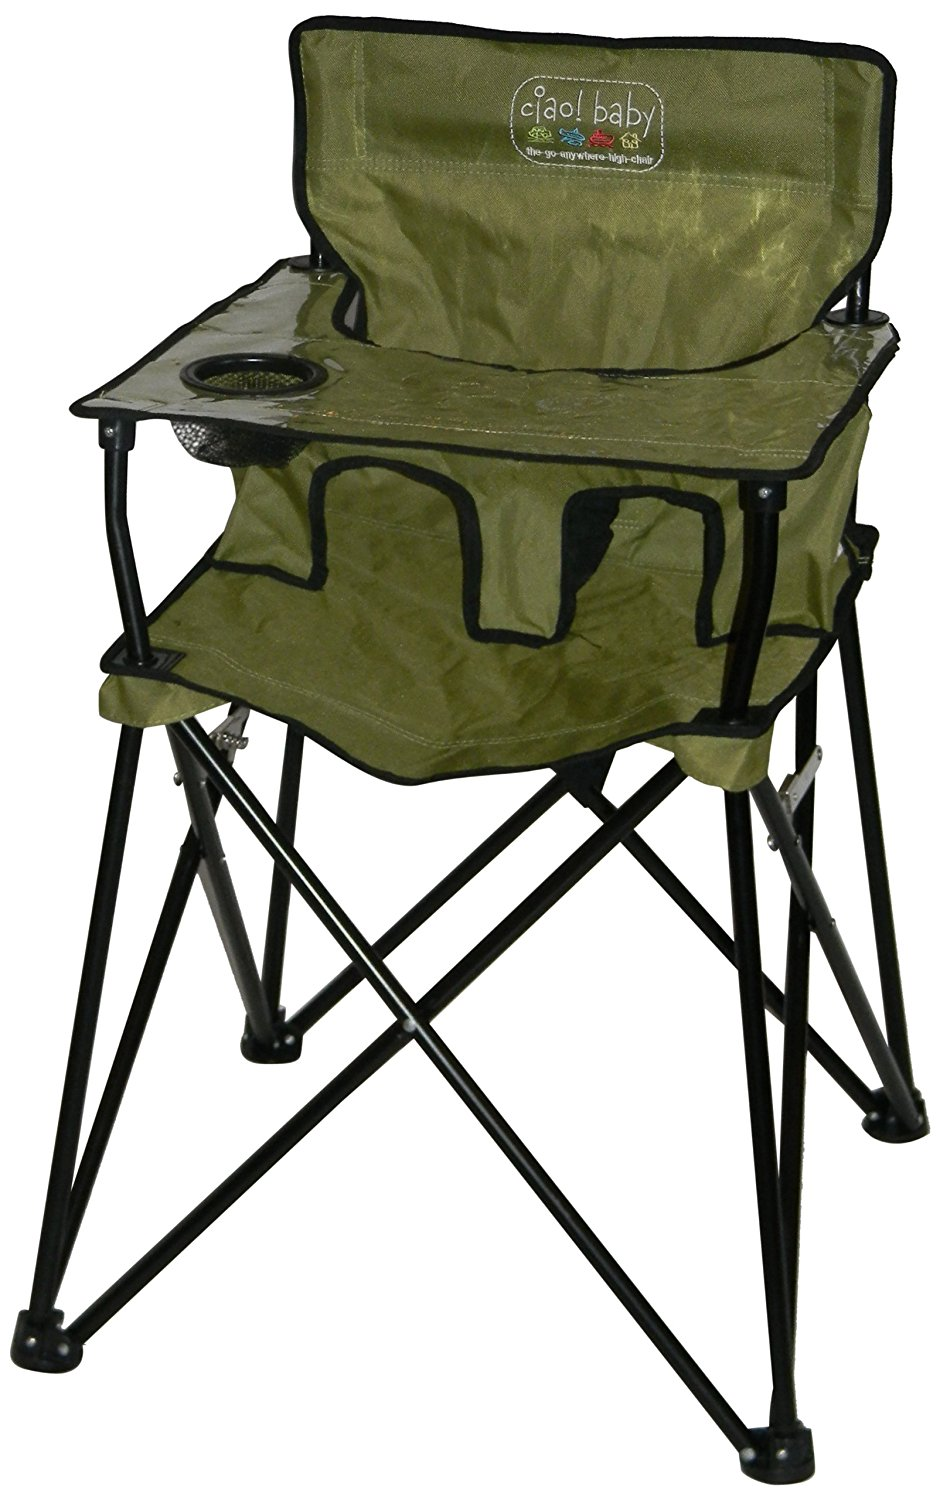 Fold Up High Chair with Tray baby Portable High Chair for Travel ciao Navy